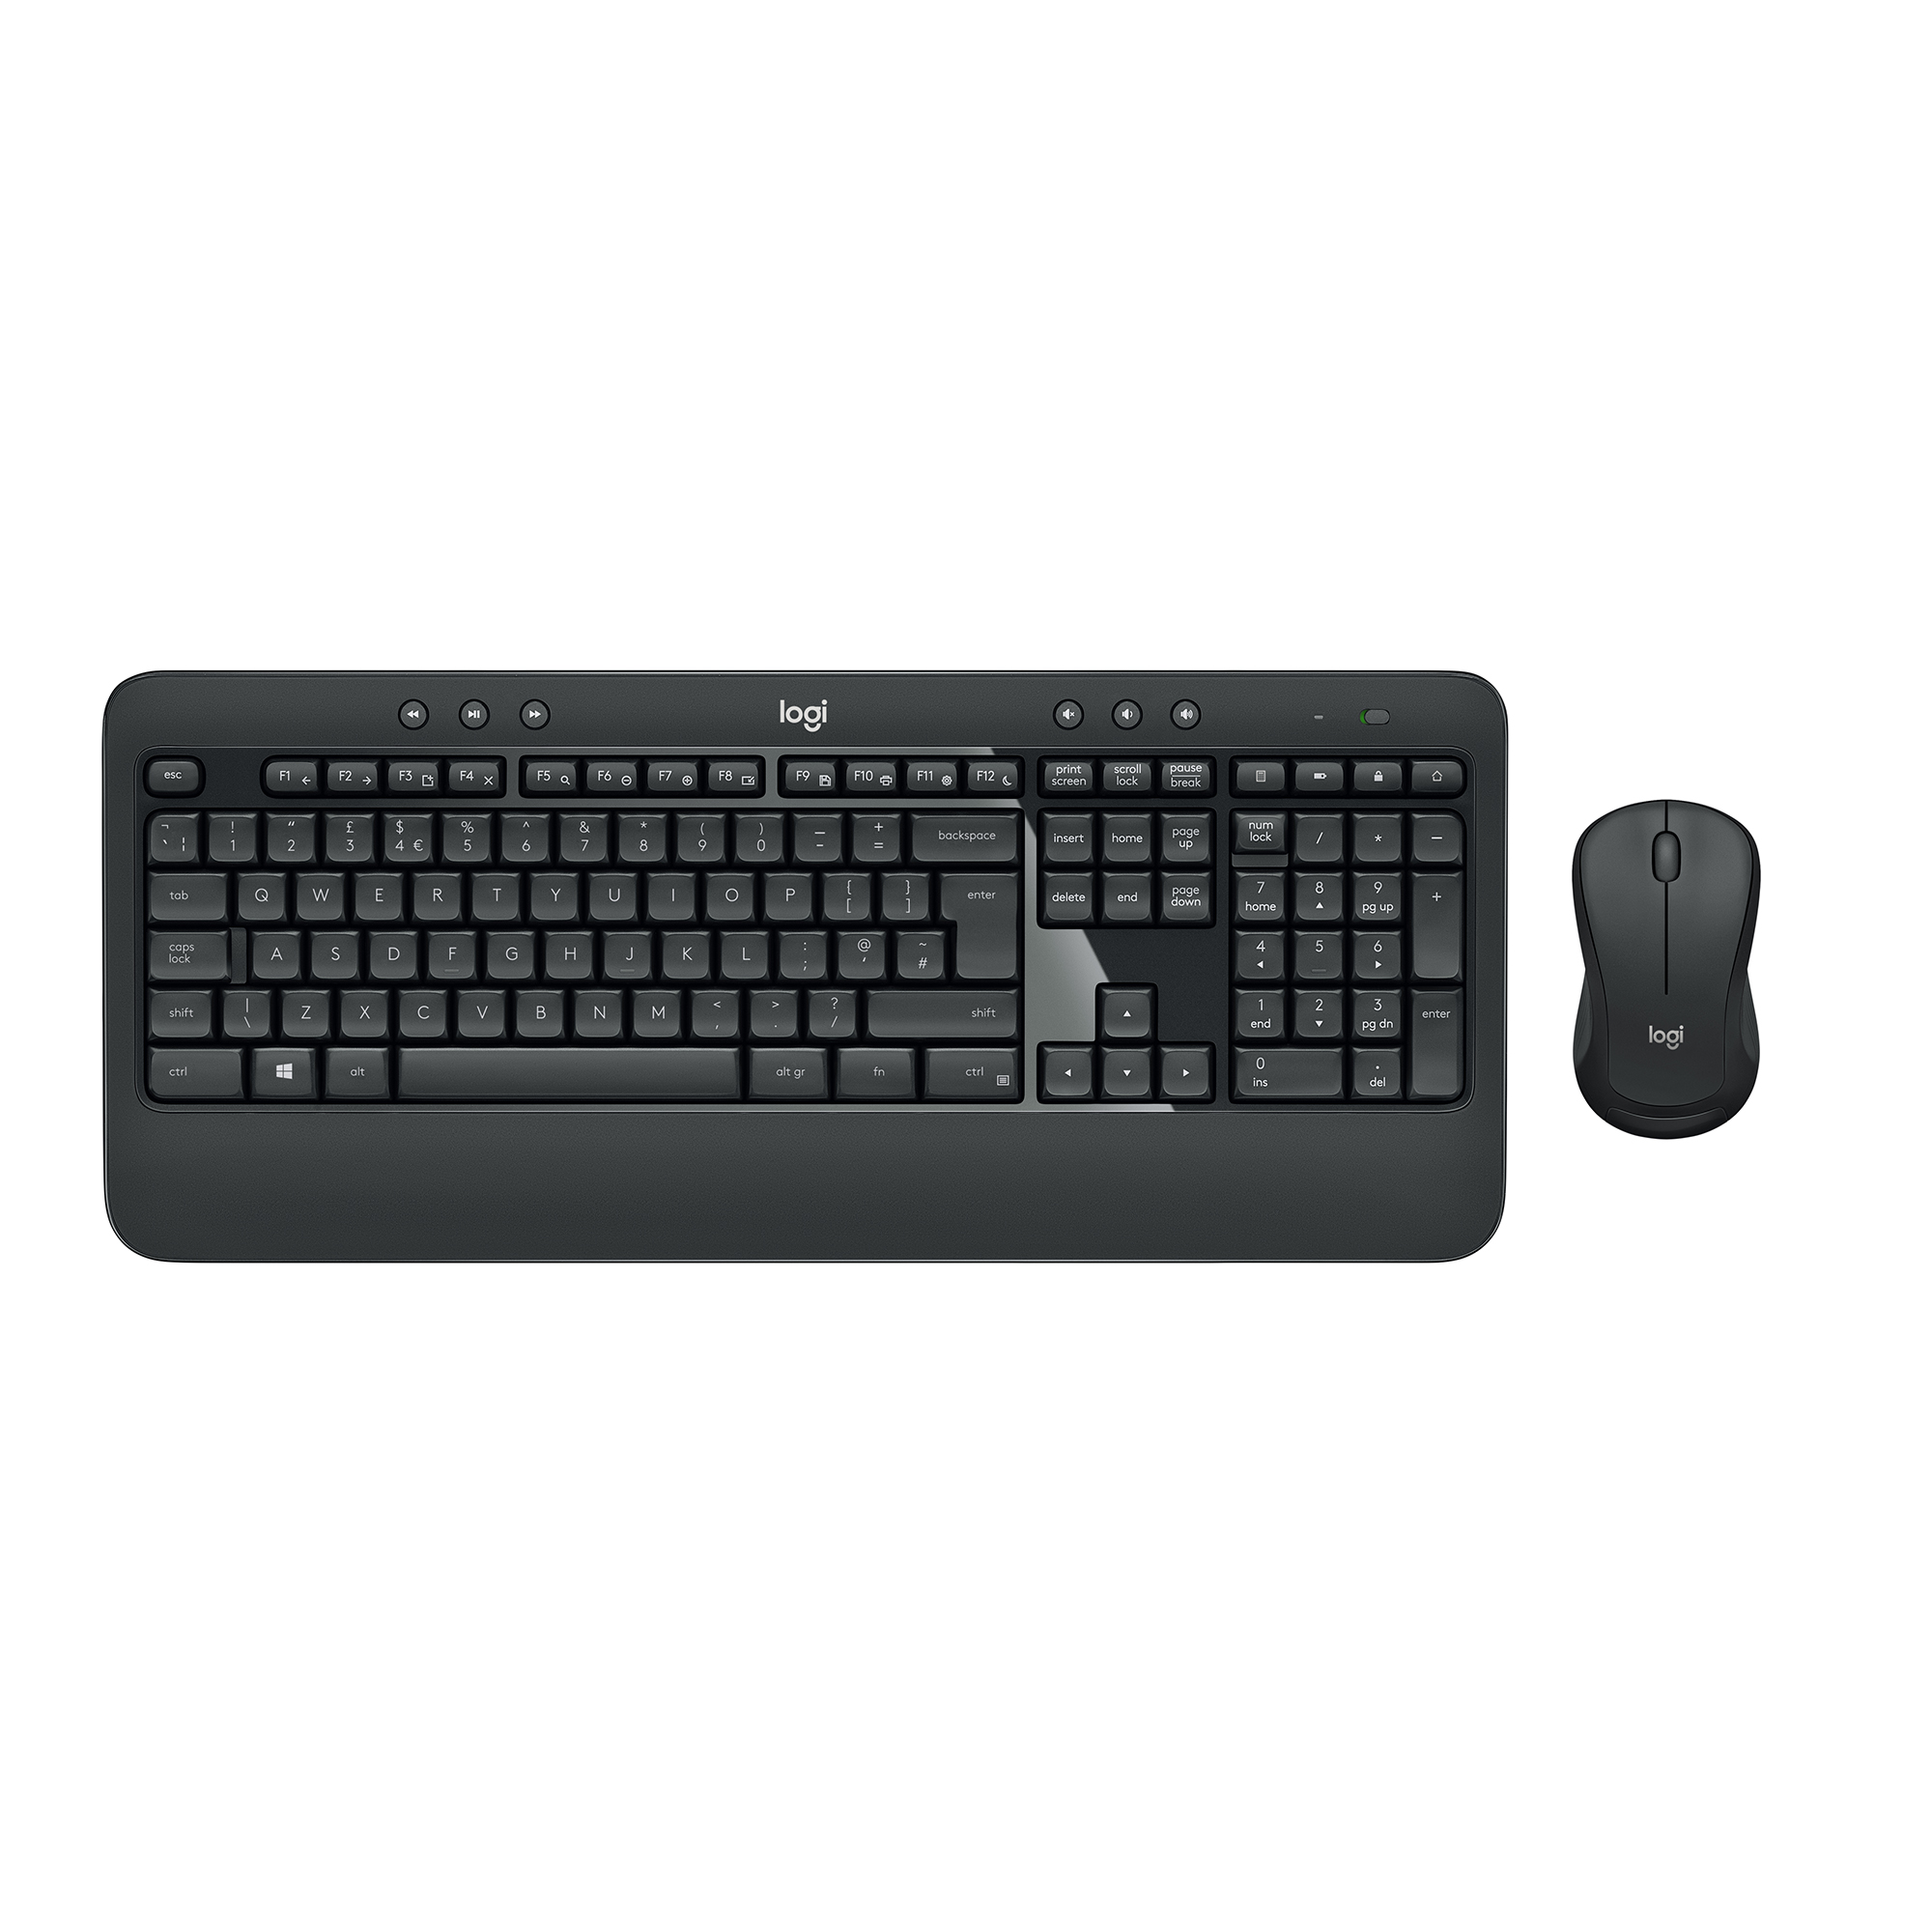 Keyboards Logitech MK540 Wireless Keyboard And Mouse Set Black Ref 920-008684